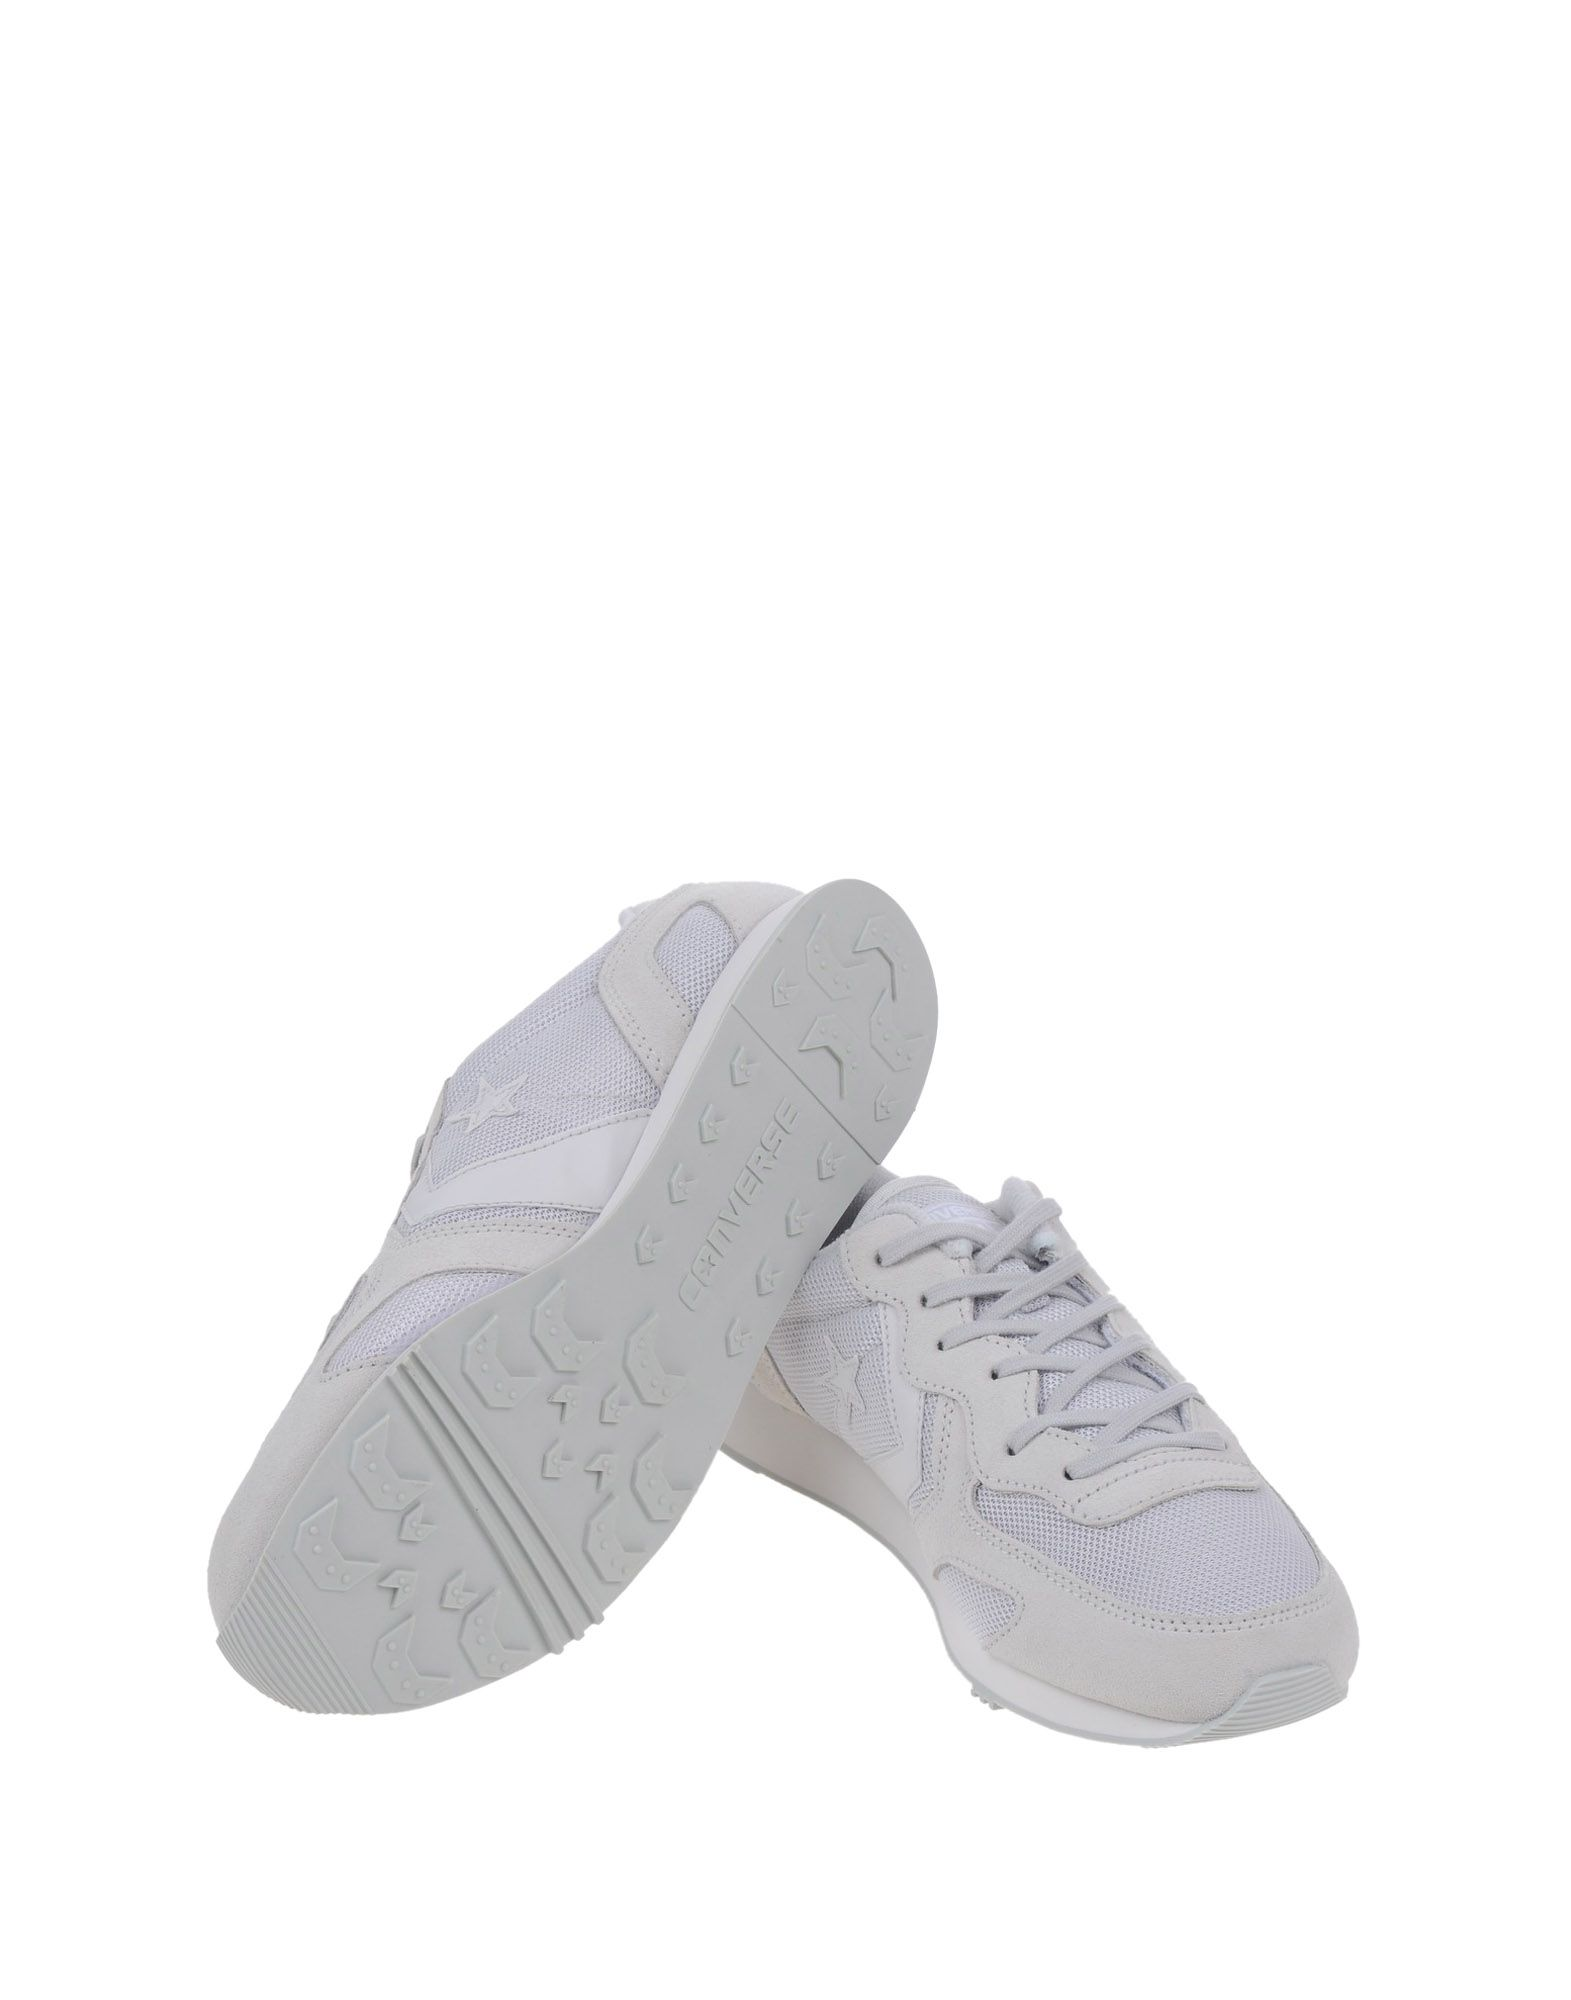 Sneakers Converse Cons Auckland Racer Ox Mesh/Suede - Femme - Sneakers Converse Cons sur